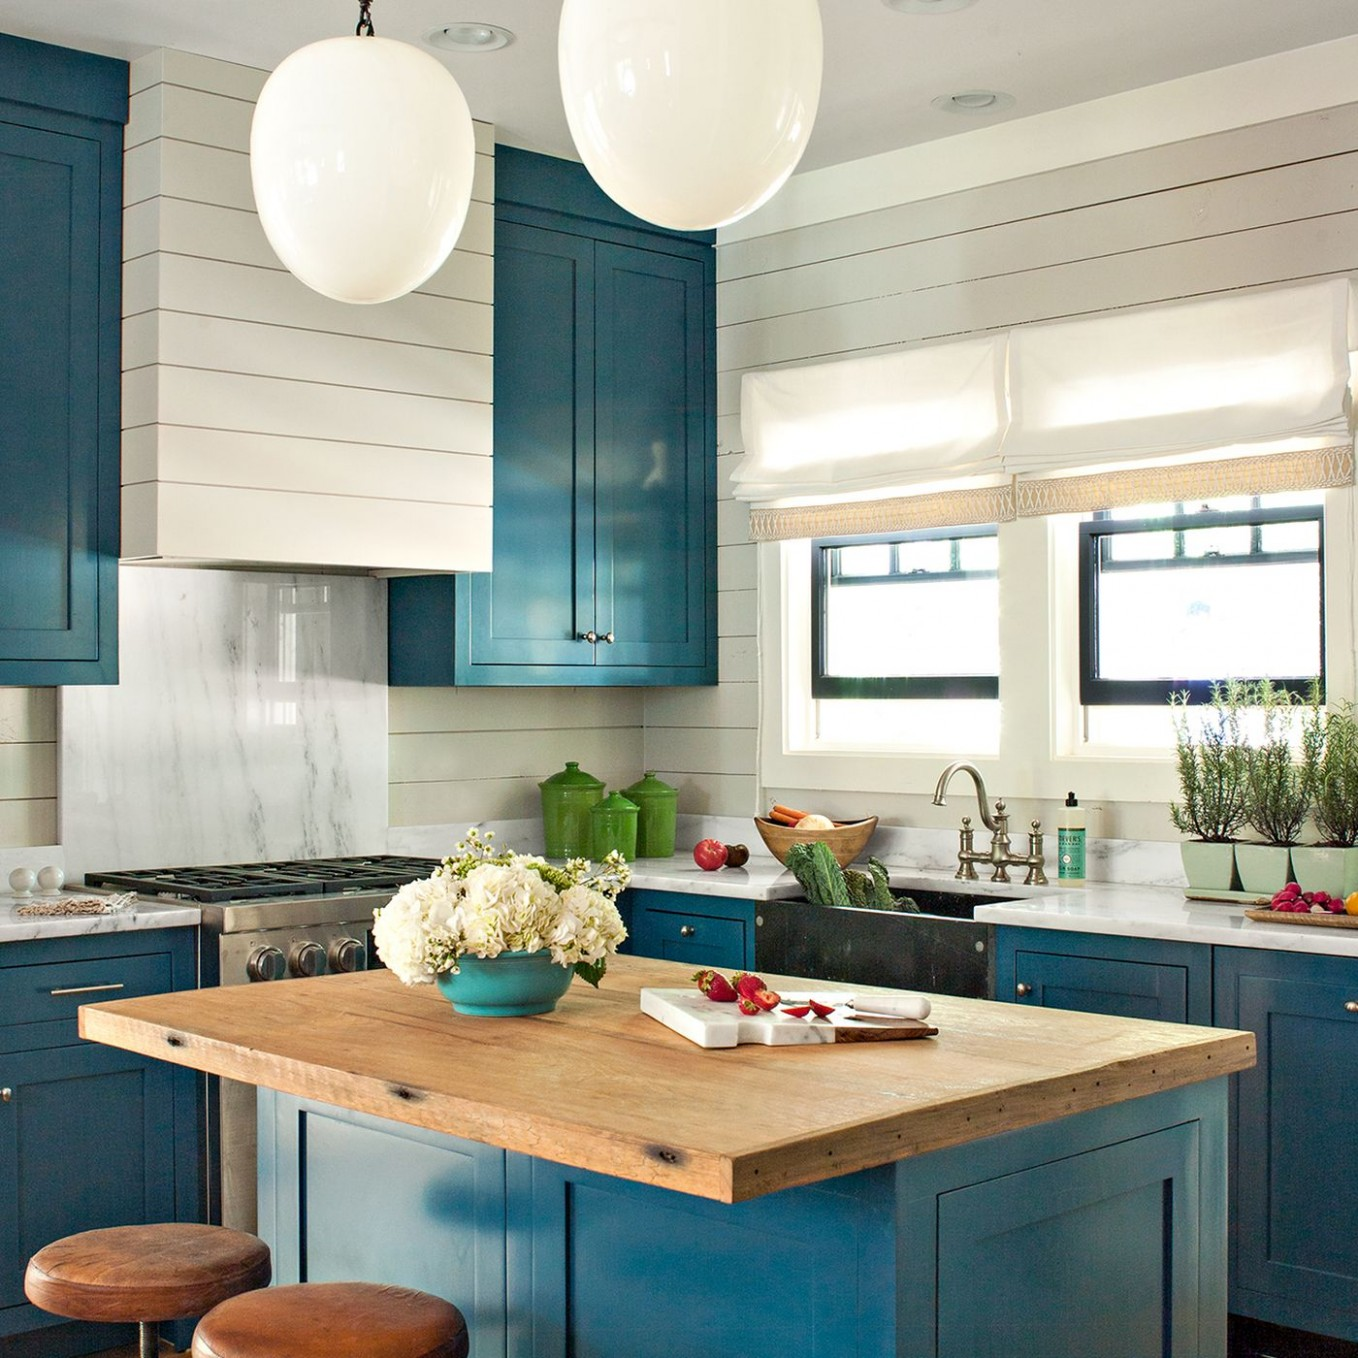 All About Replacing Cabinet Doors - This Old House - Kitchen Cabinet Replacement Average Cost